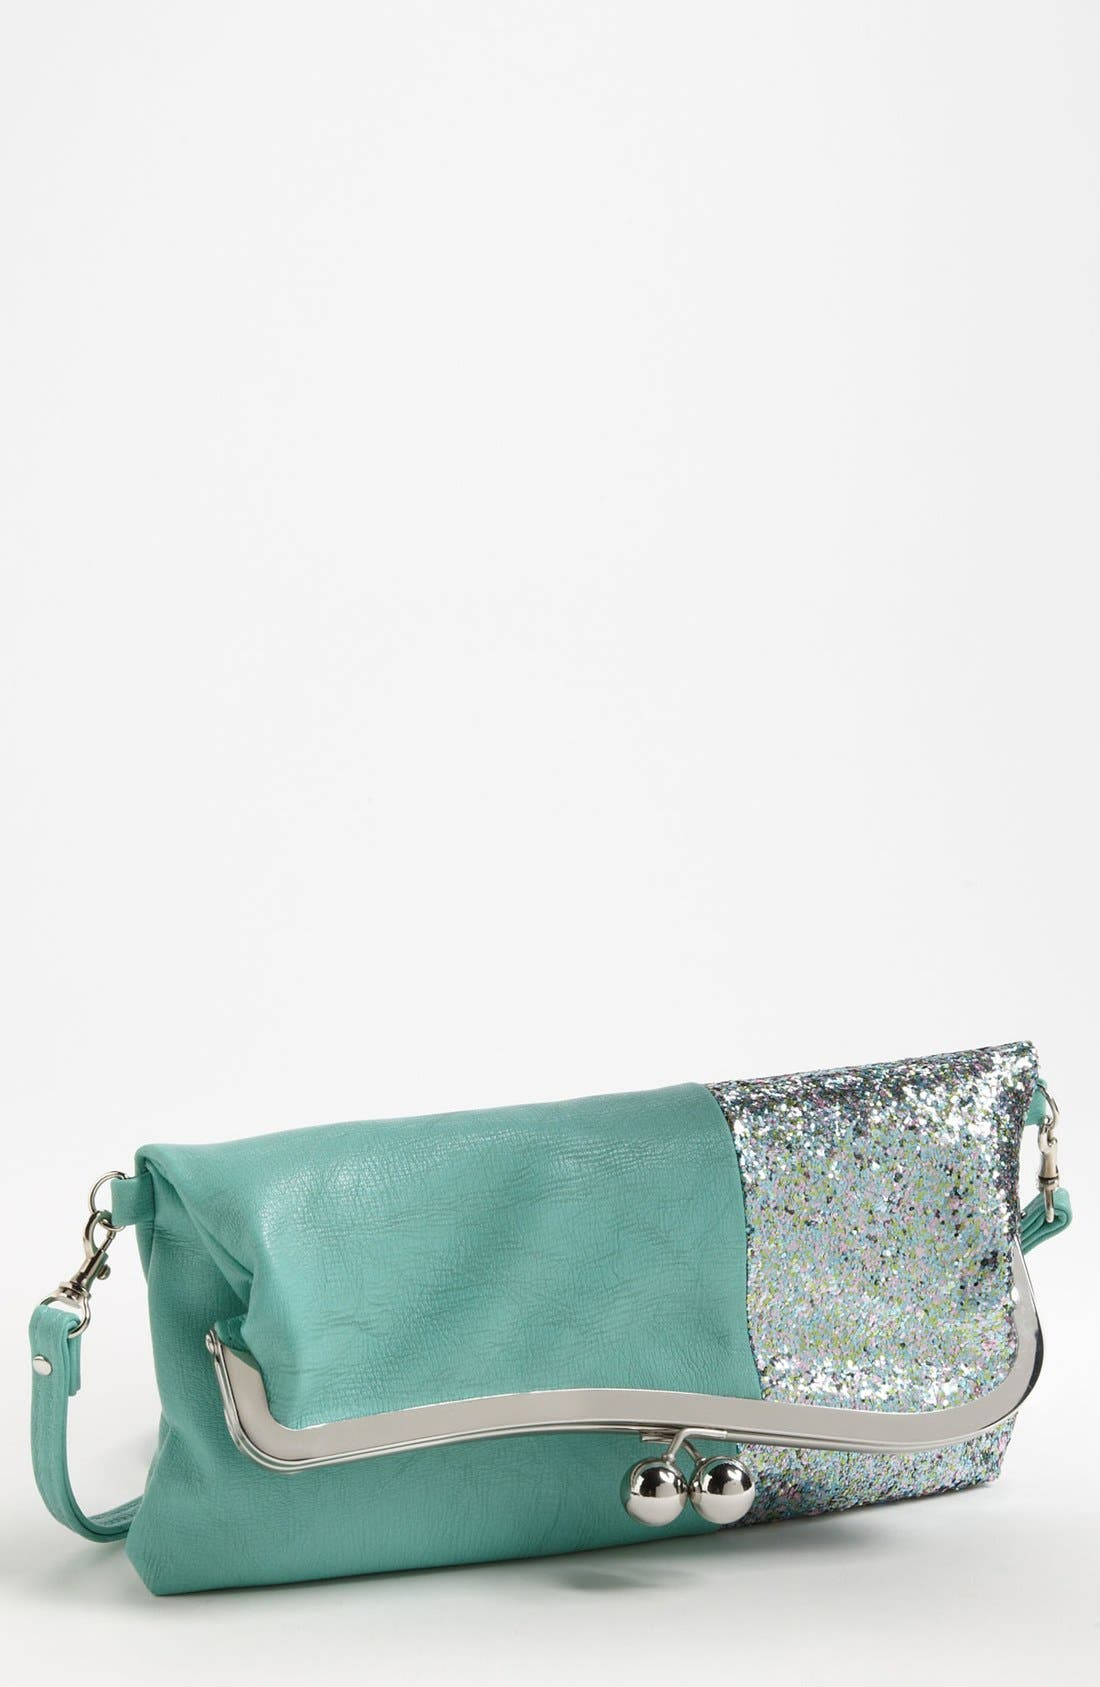 Main Image - Jessica Simpson 'Stella' Framed Foldover Clutch